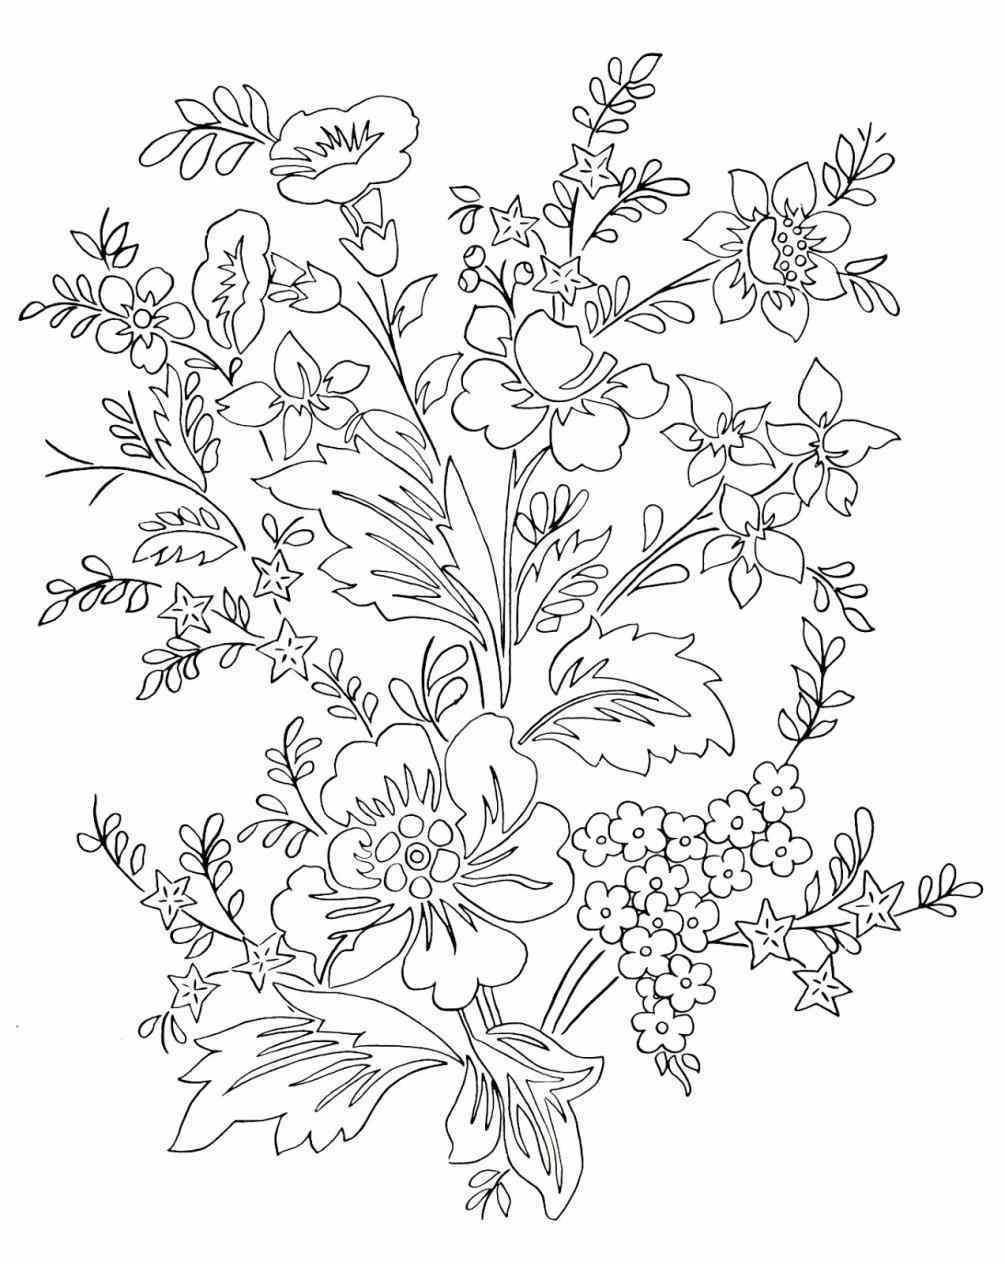 Tumblr Flower Drawing at GetDrawings.com | Free for personal use ...